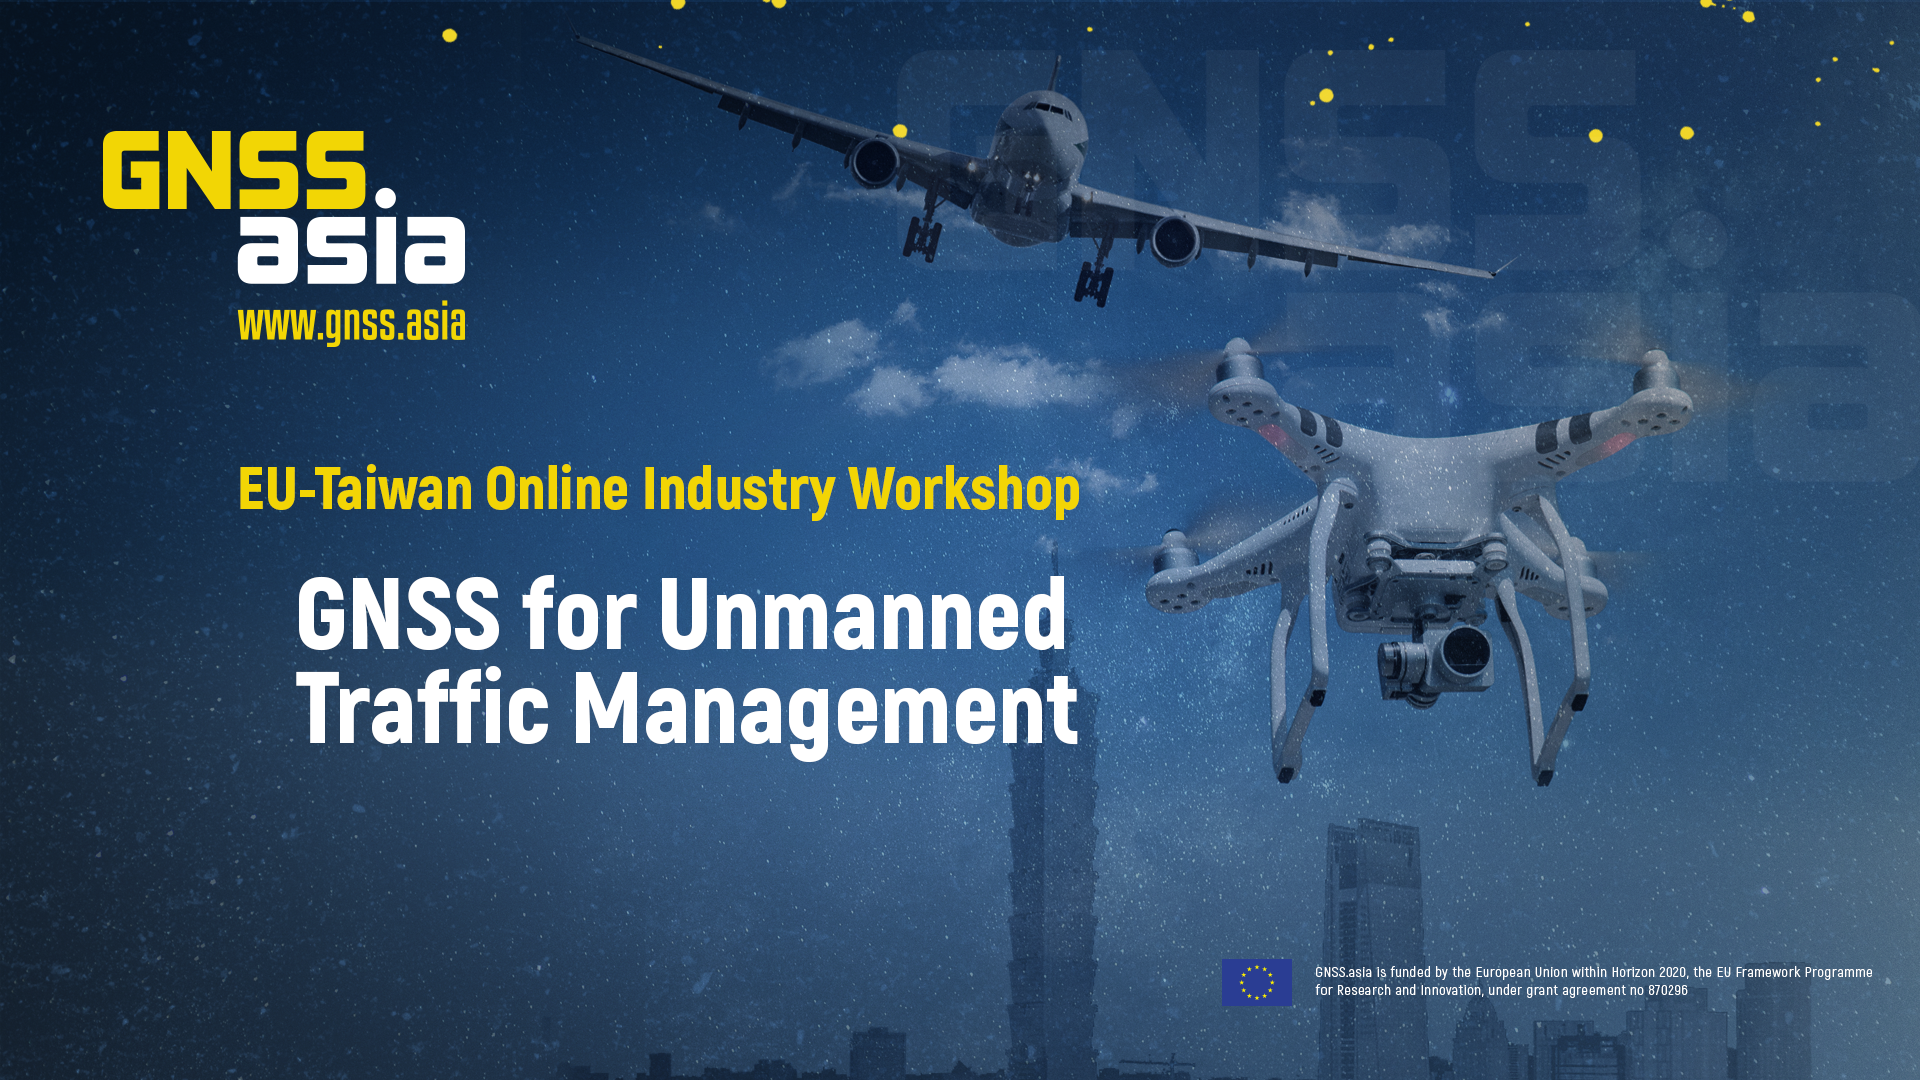 Flashback to the EU-Taiwan Online Workshop on GNSS for Unmanned Traffic Management